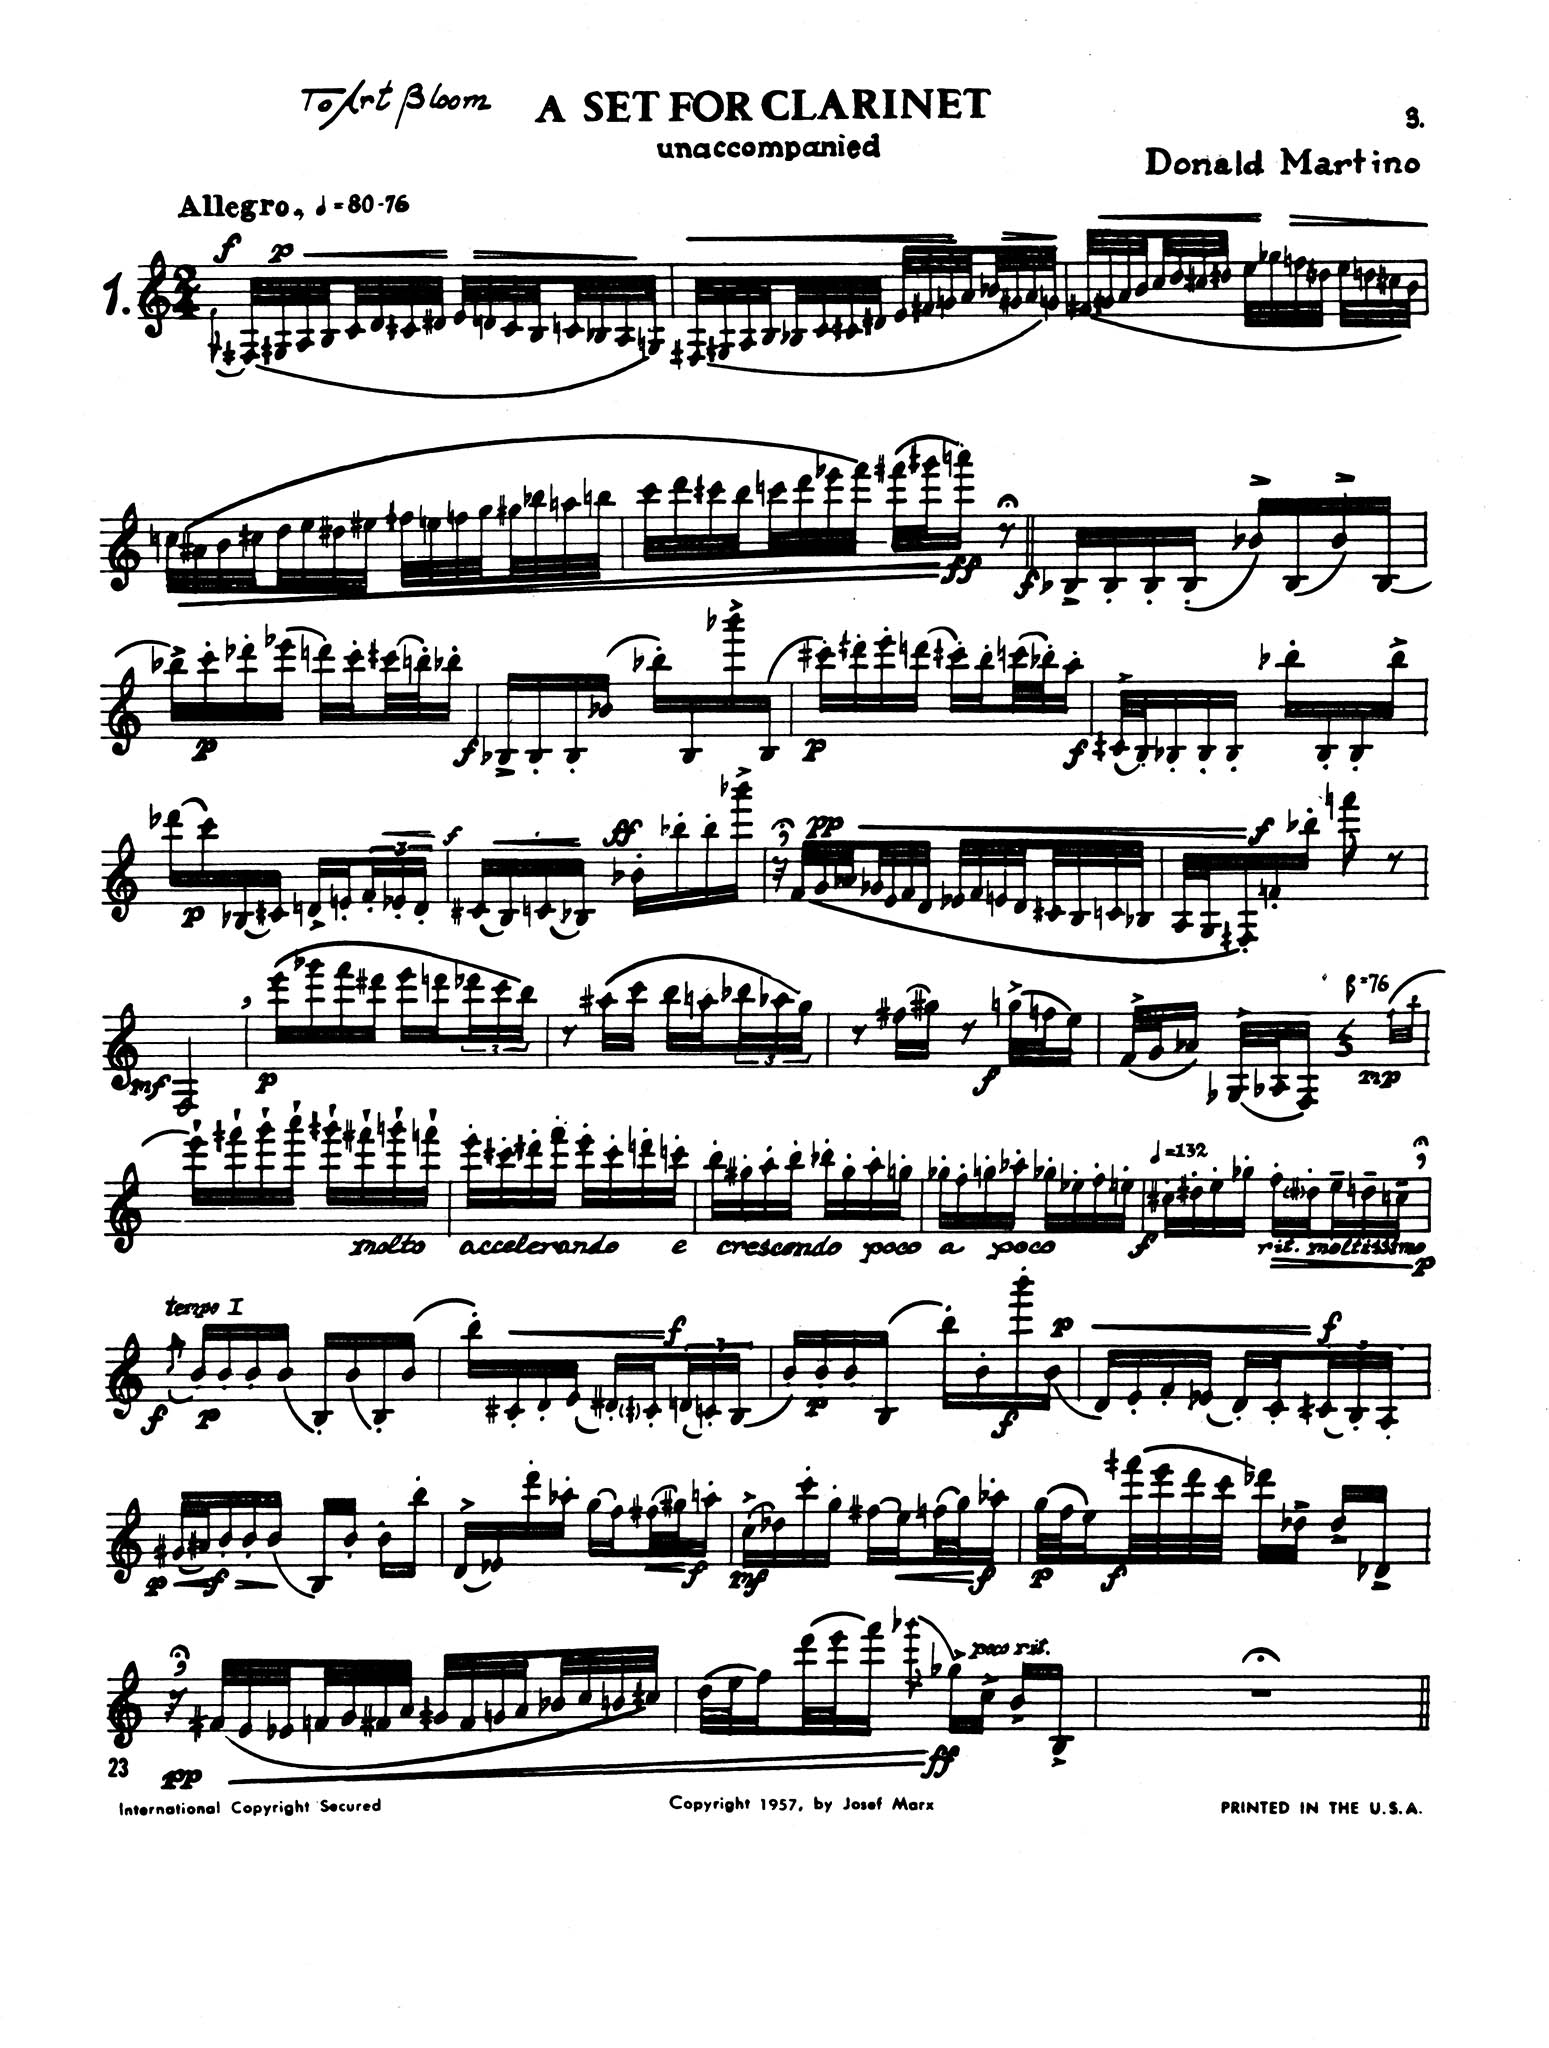 A Set for Clarinet - Movement 1